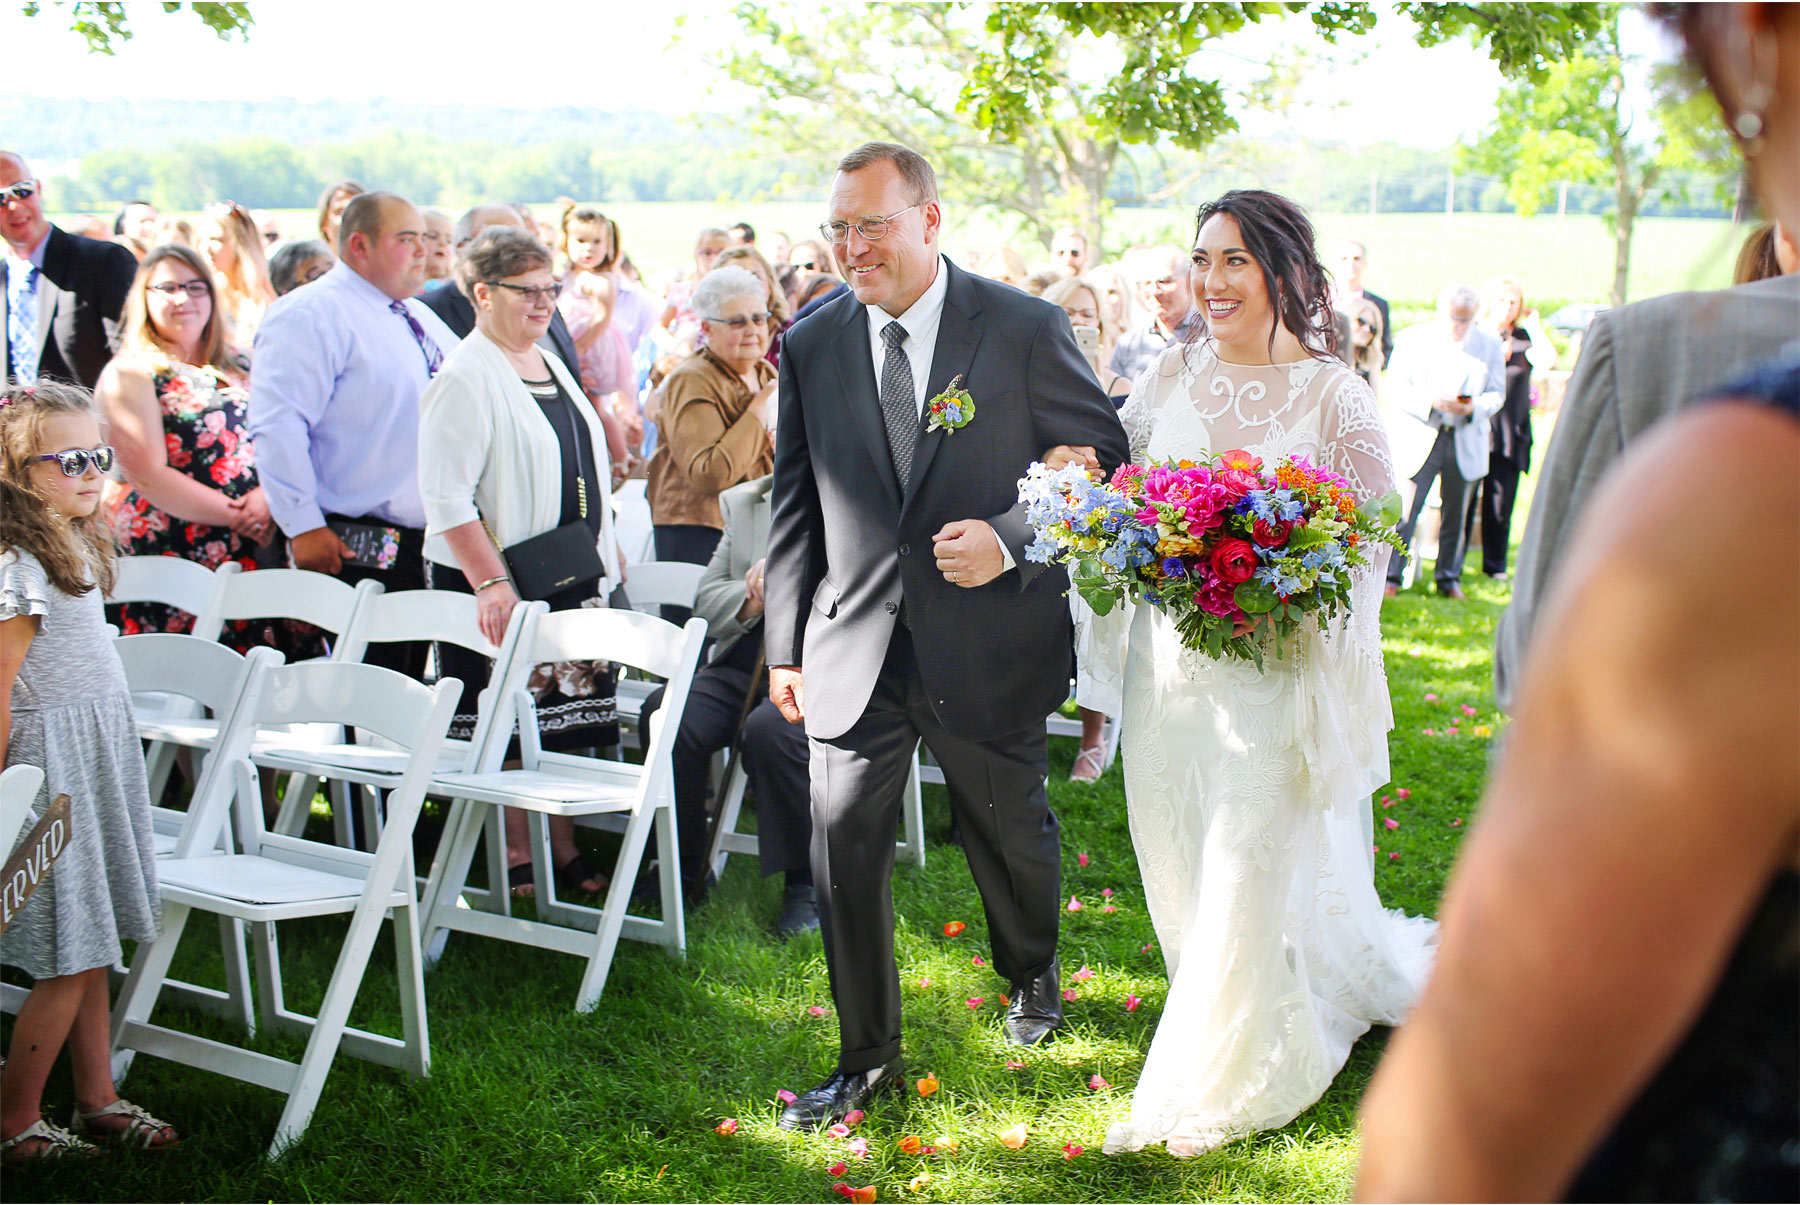 14-Vick-Photography-Rochester-Minnesota-Mayowood-Stone-Barn-Country-Wedding-Summer-Outdoor-Ceremony-Bride-Father-Lizz-and-Brady.jpg